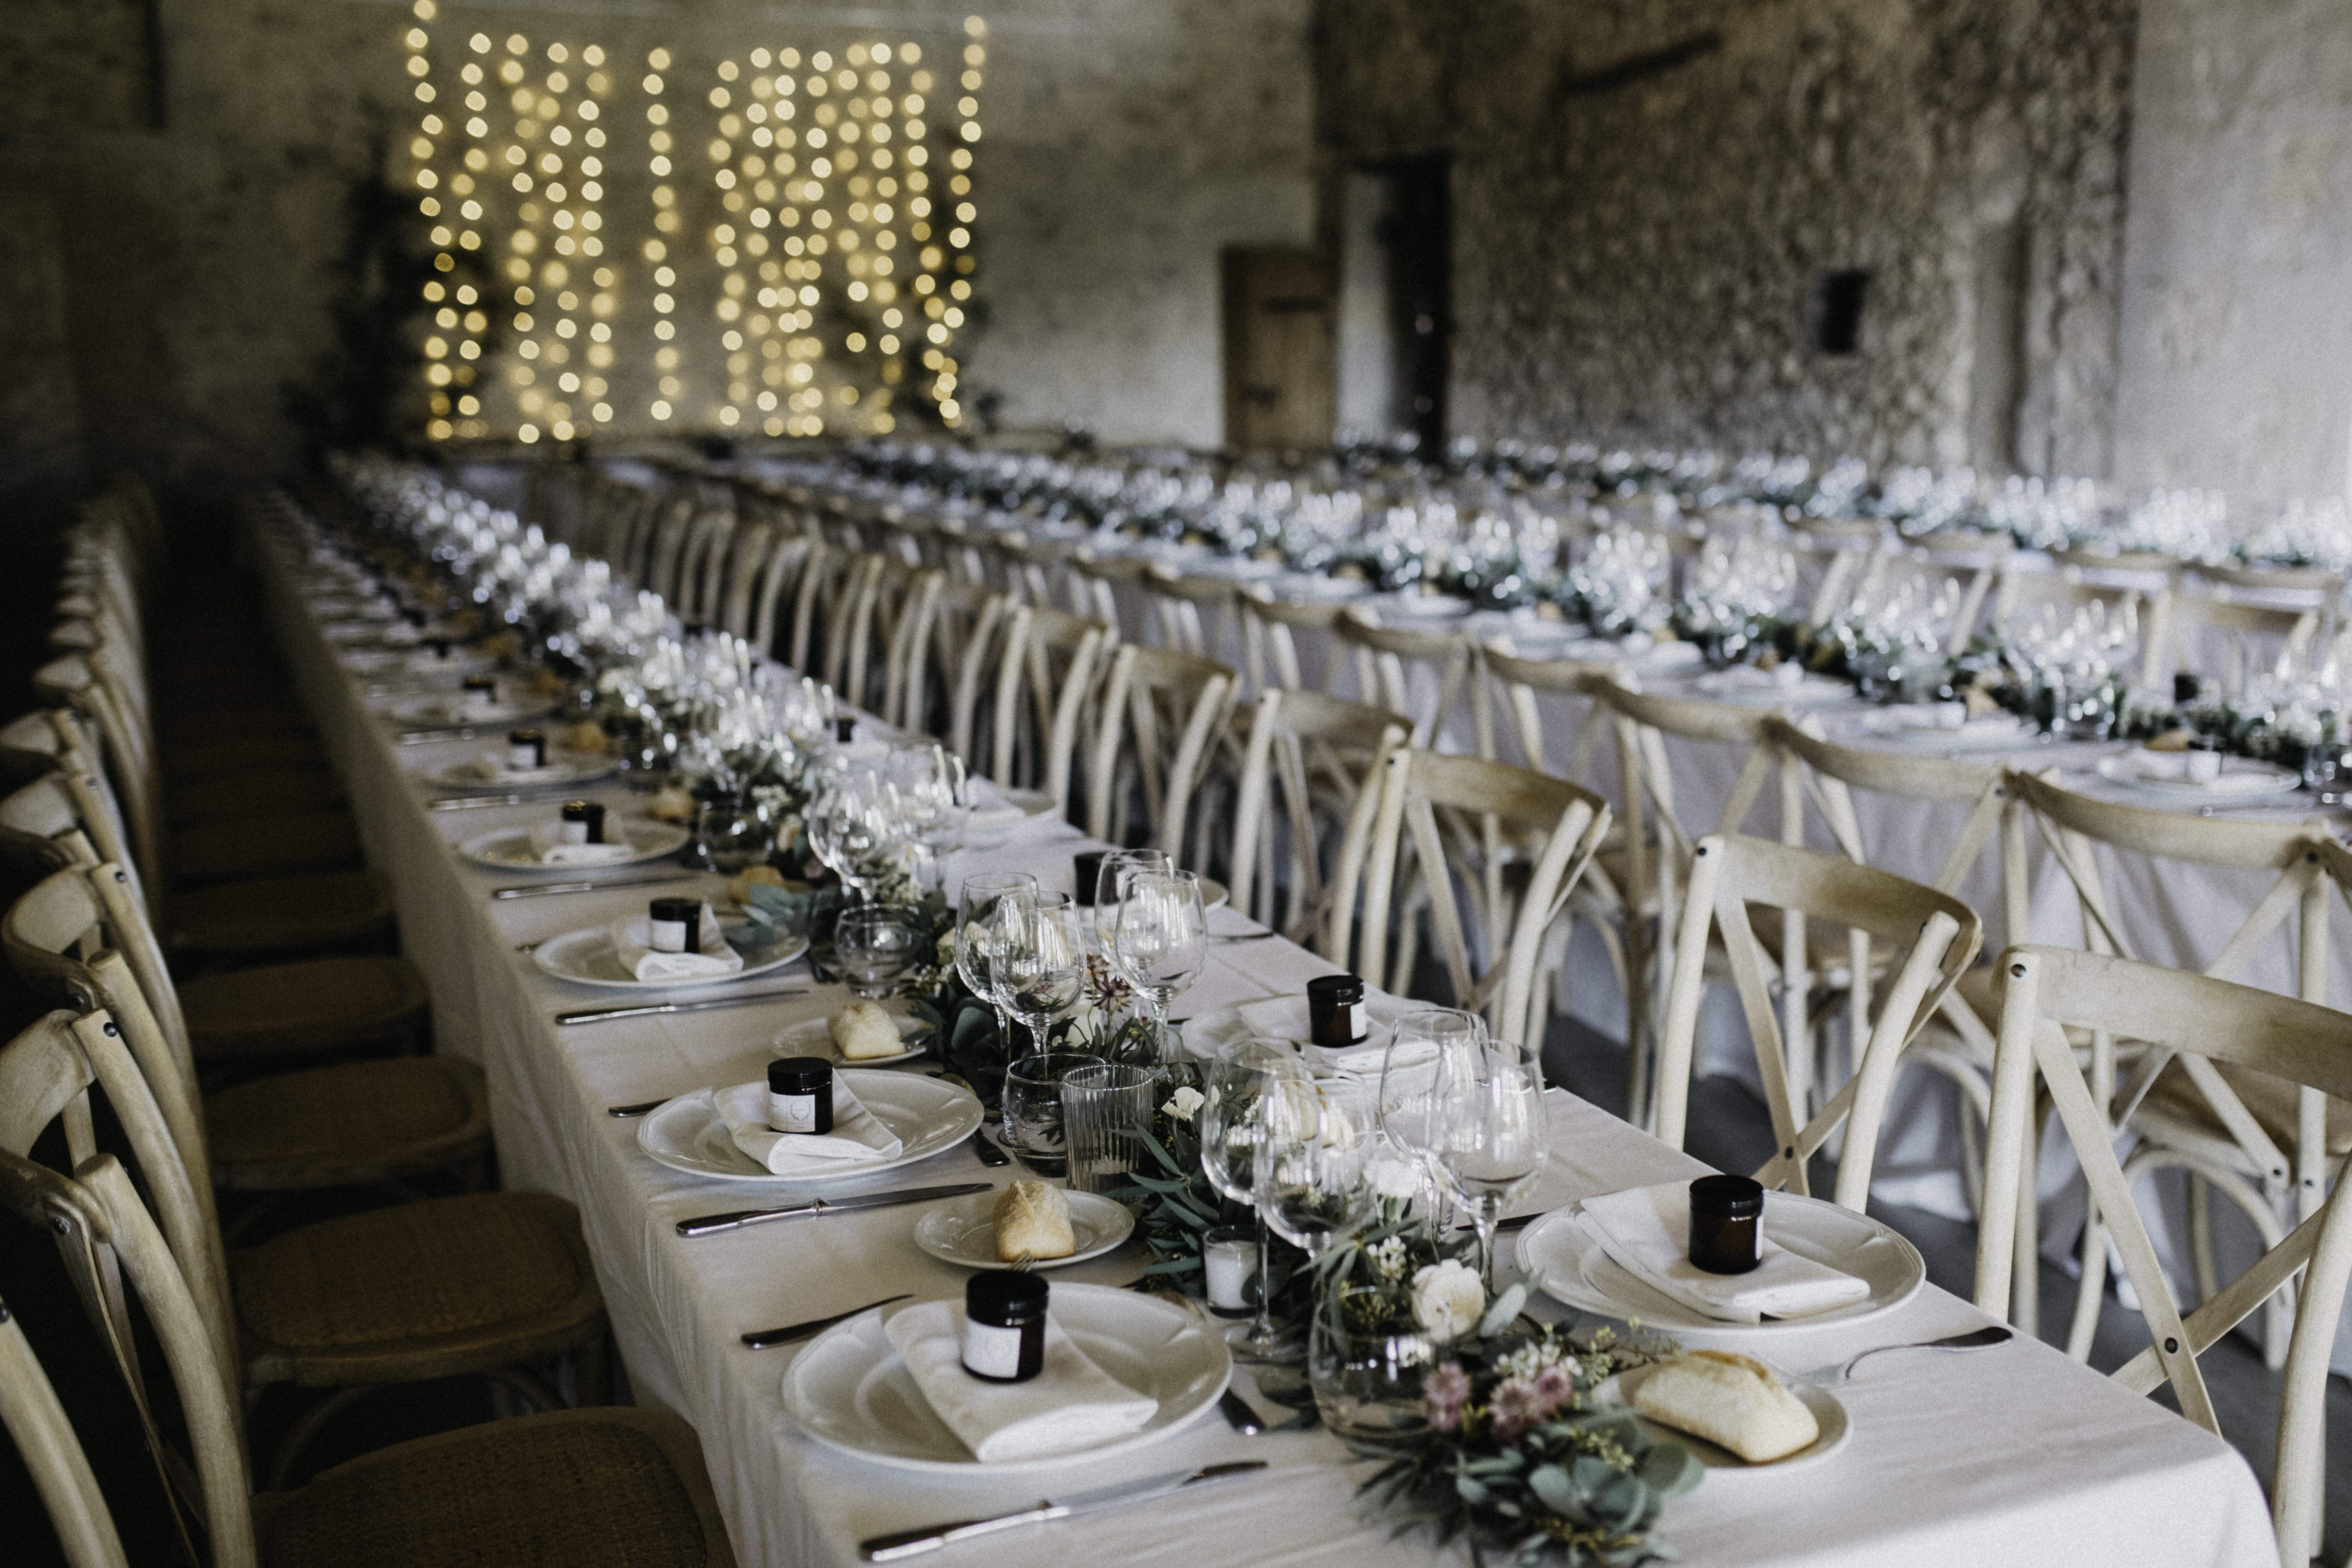 long table with chairs set